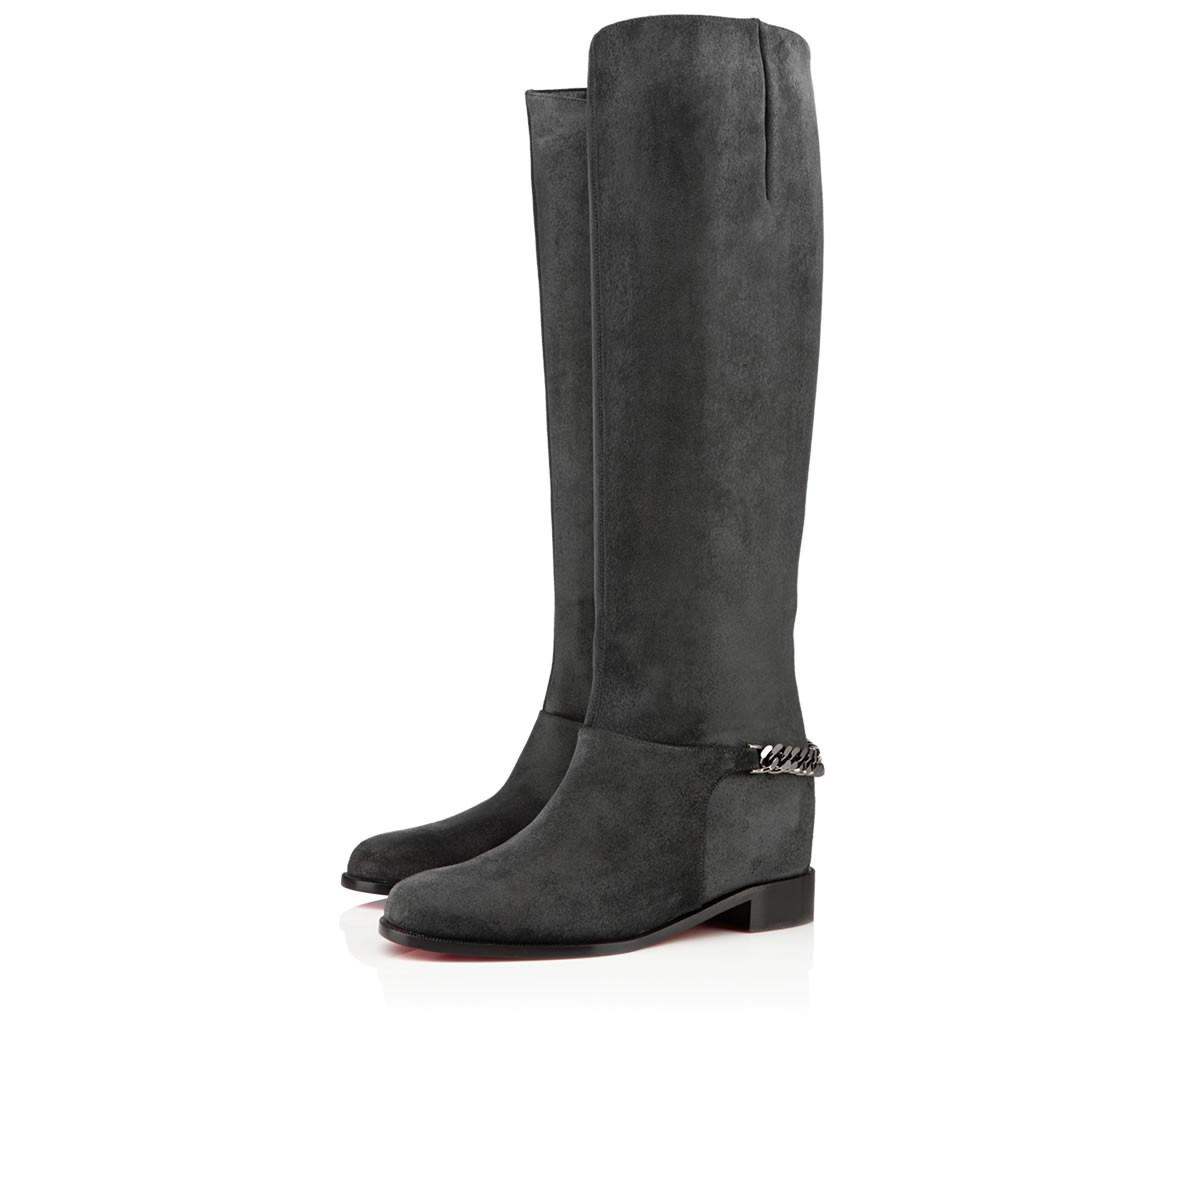 Luxury Designed Cate Boot For Women,Ladies Red Bottom Boots Chains Platform Heel Women Winter Shoes Smooth Calf Leather Knee-high Tall Boots